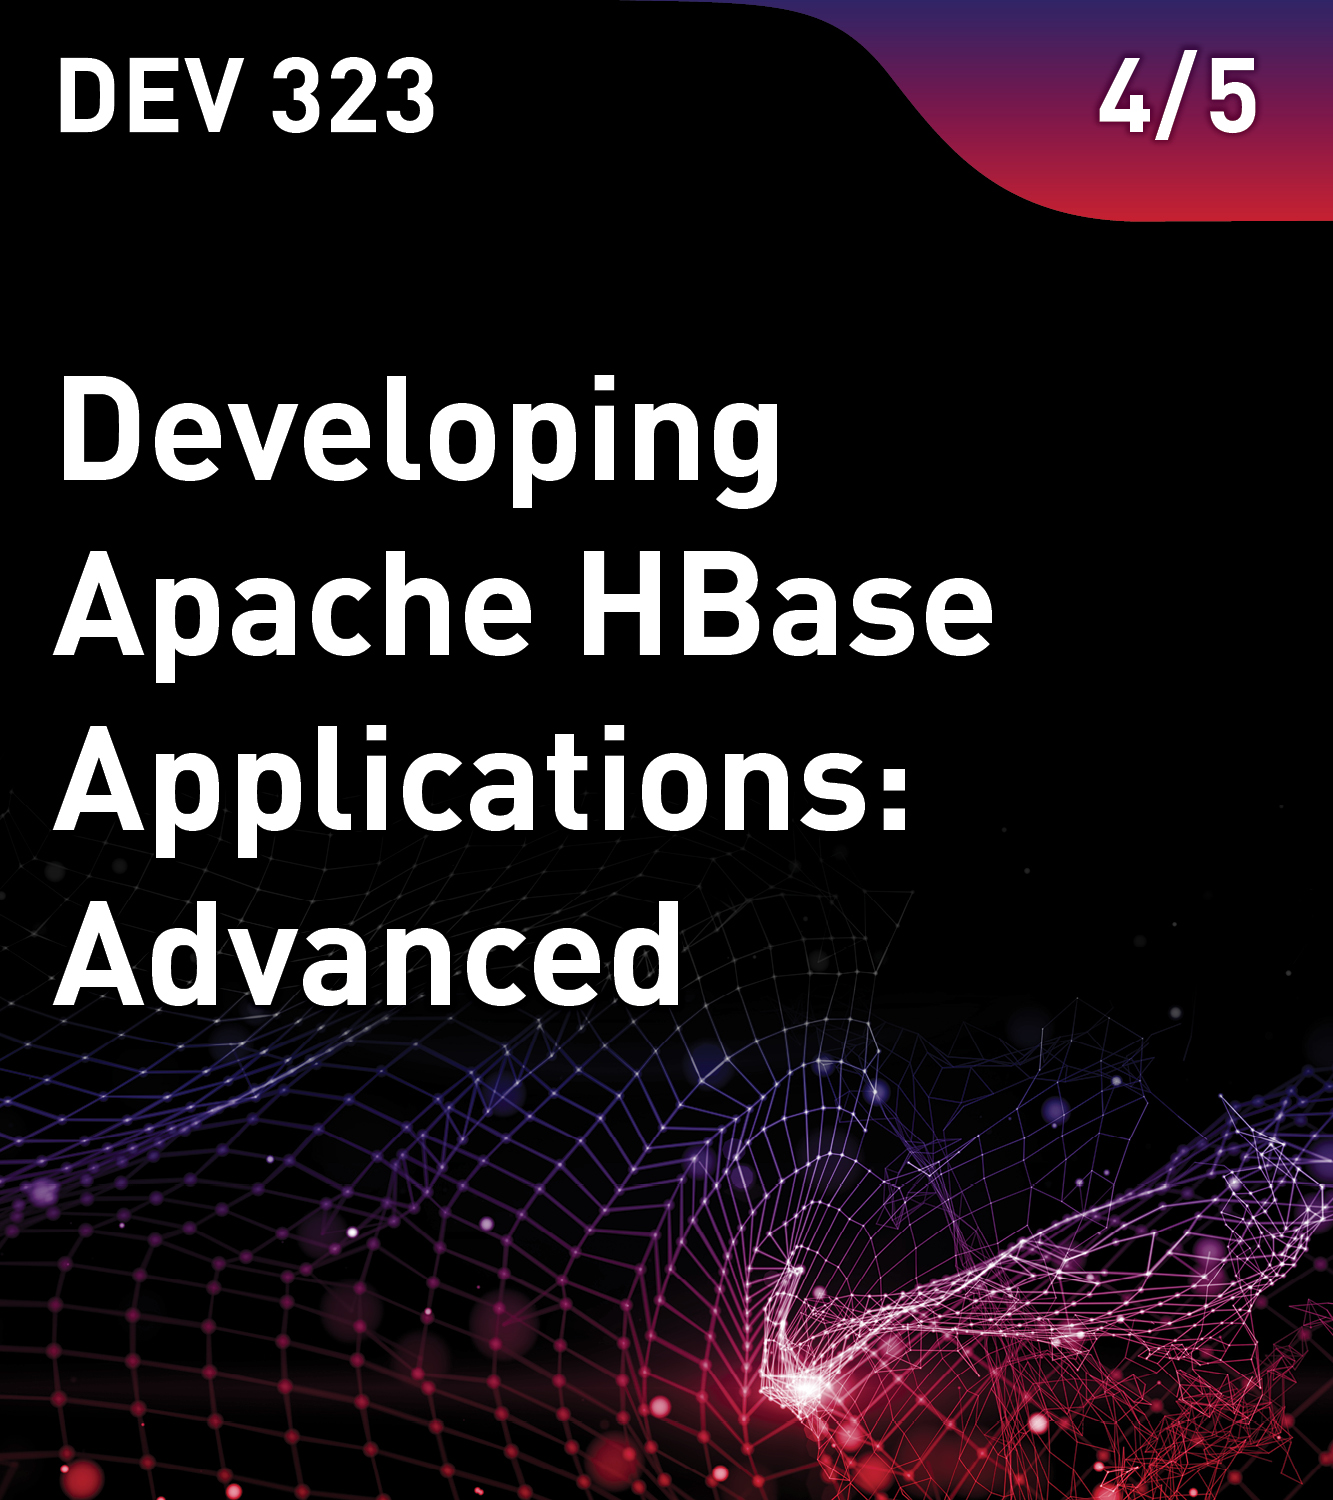 DEV 322 - Developing Apache HBase Applications: Basics